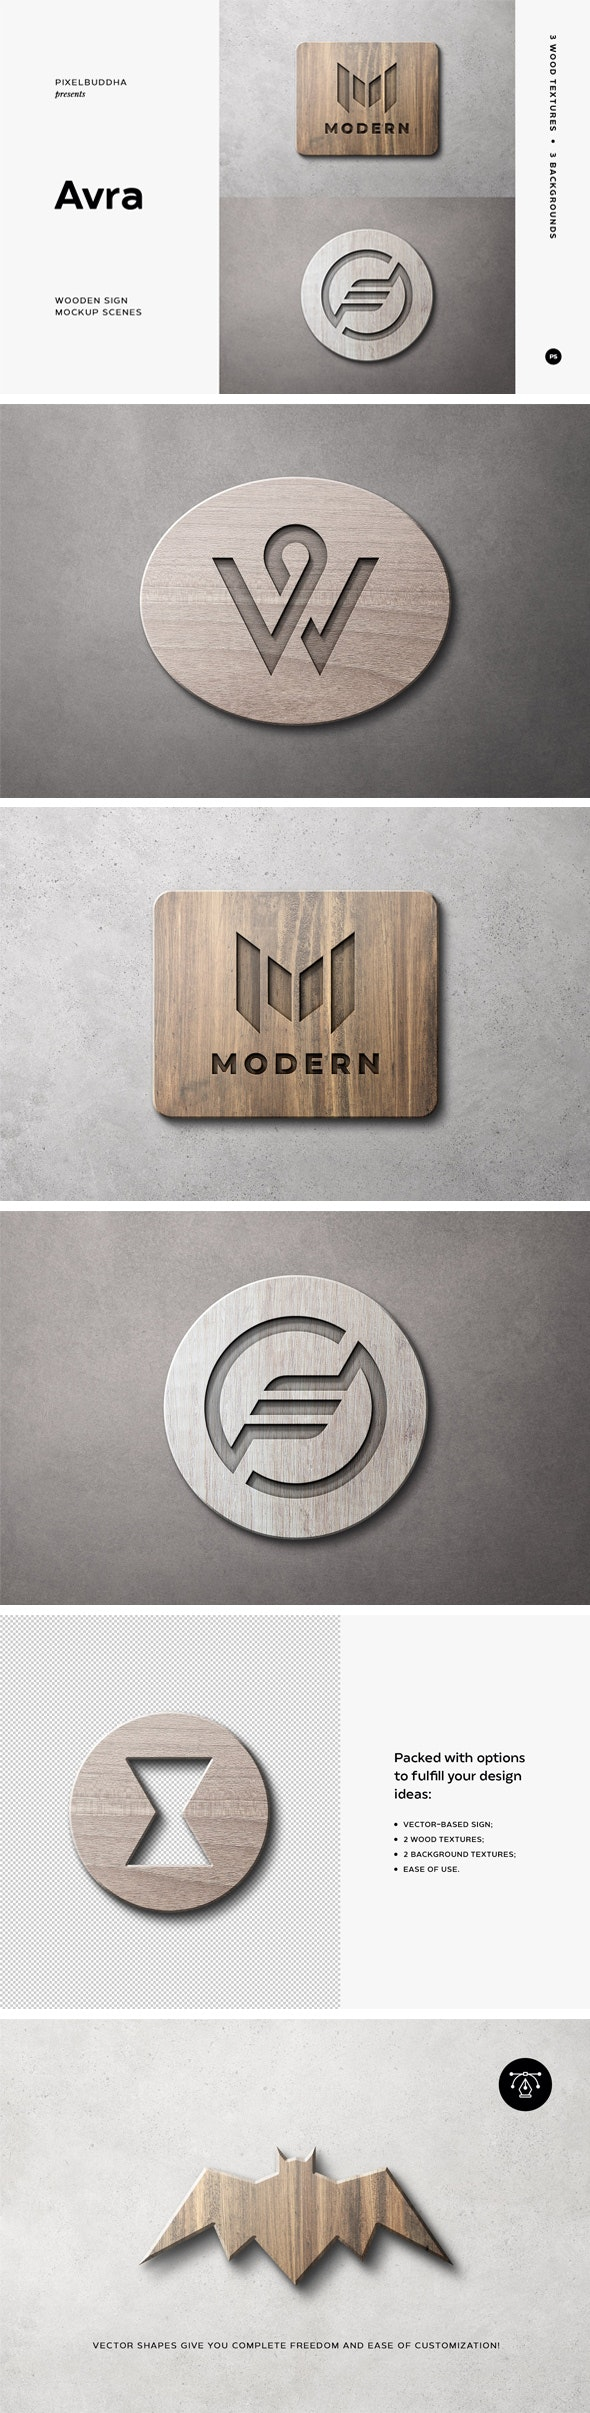 Wooden Sign Mockup Scenes - Text Effects Styles